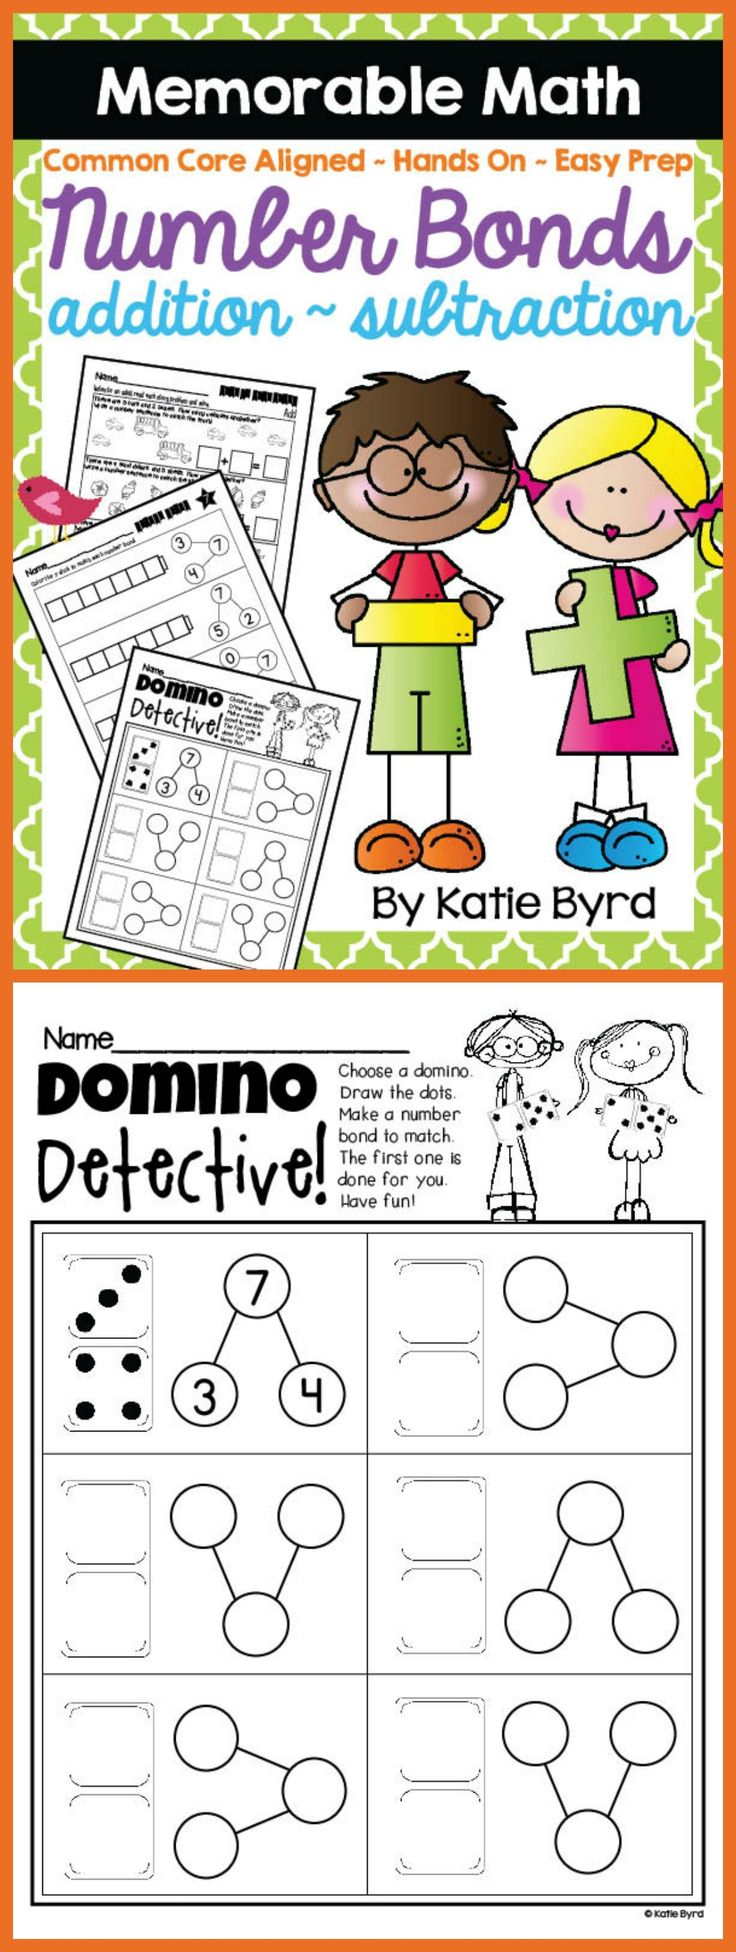 Best 25 teaching addition ideas on pinterest addition a super resource for teaching number bonds addition and subtraction to young students robcynllc Images